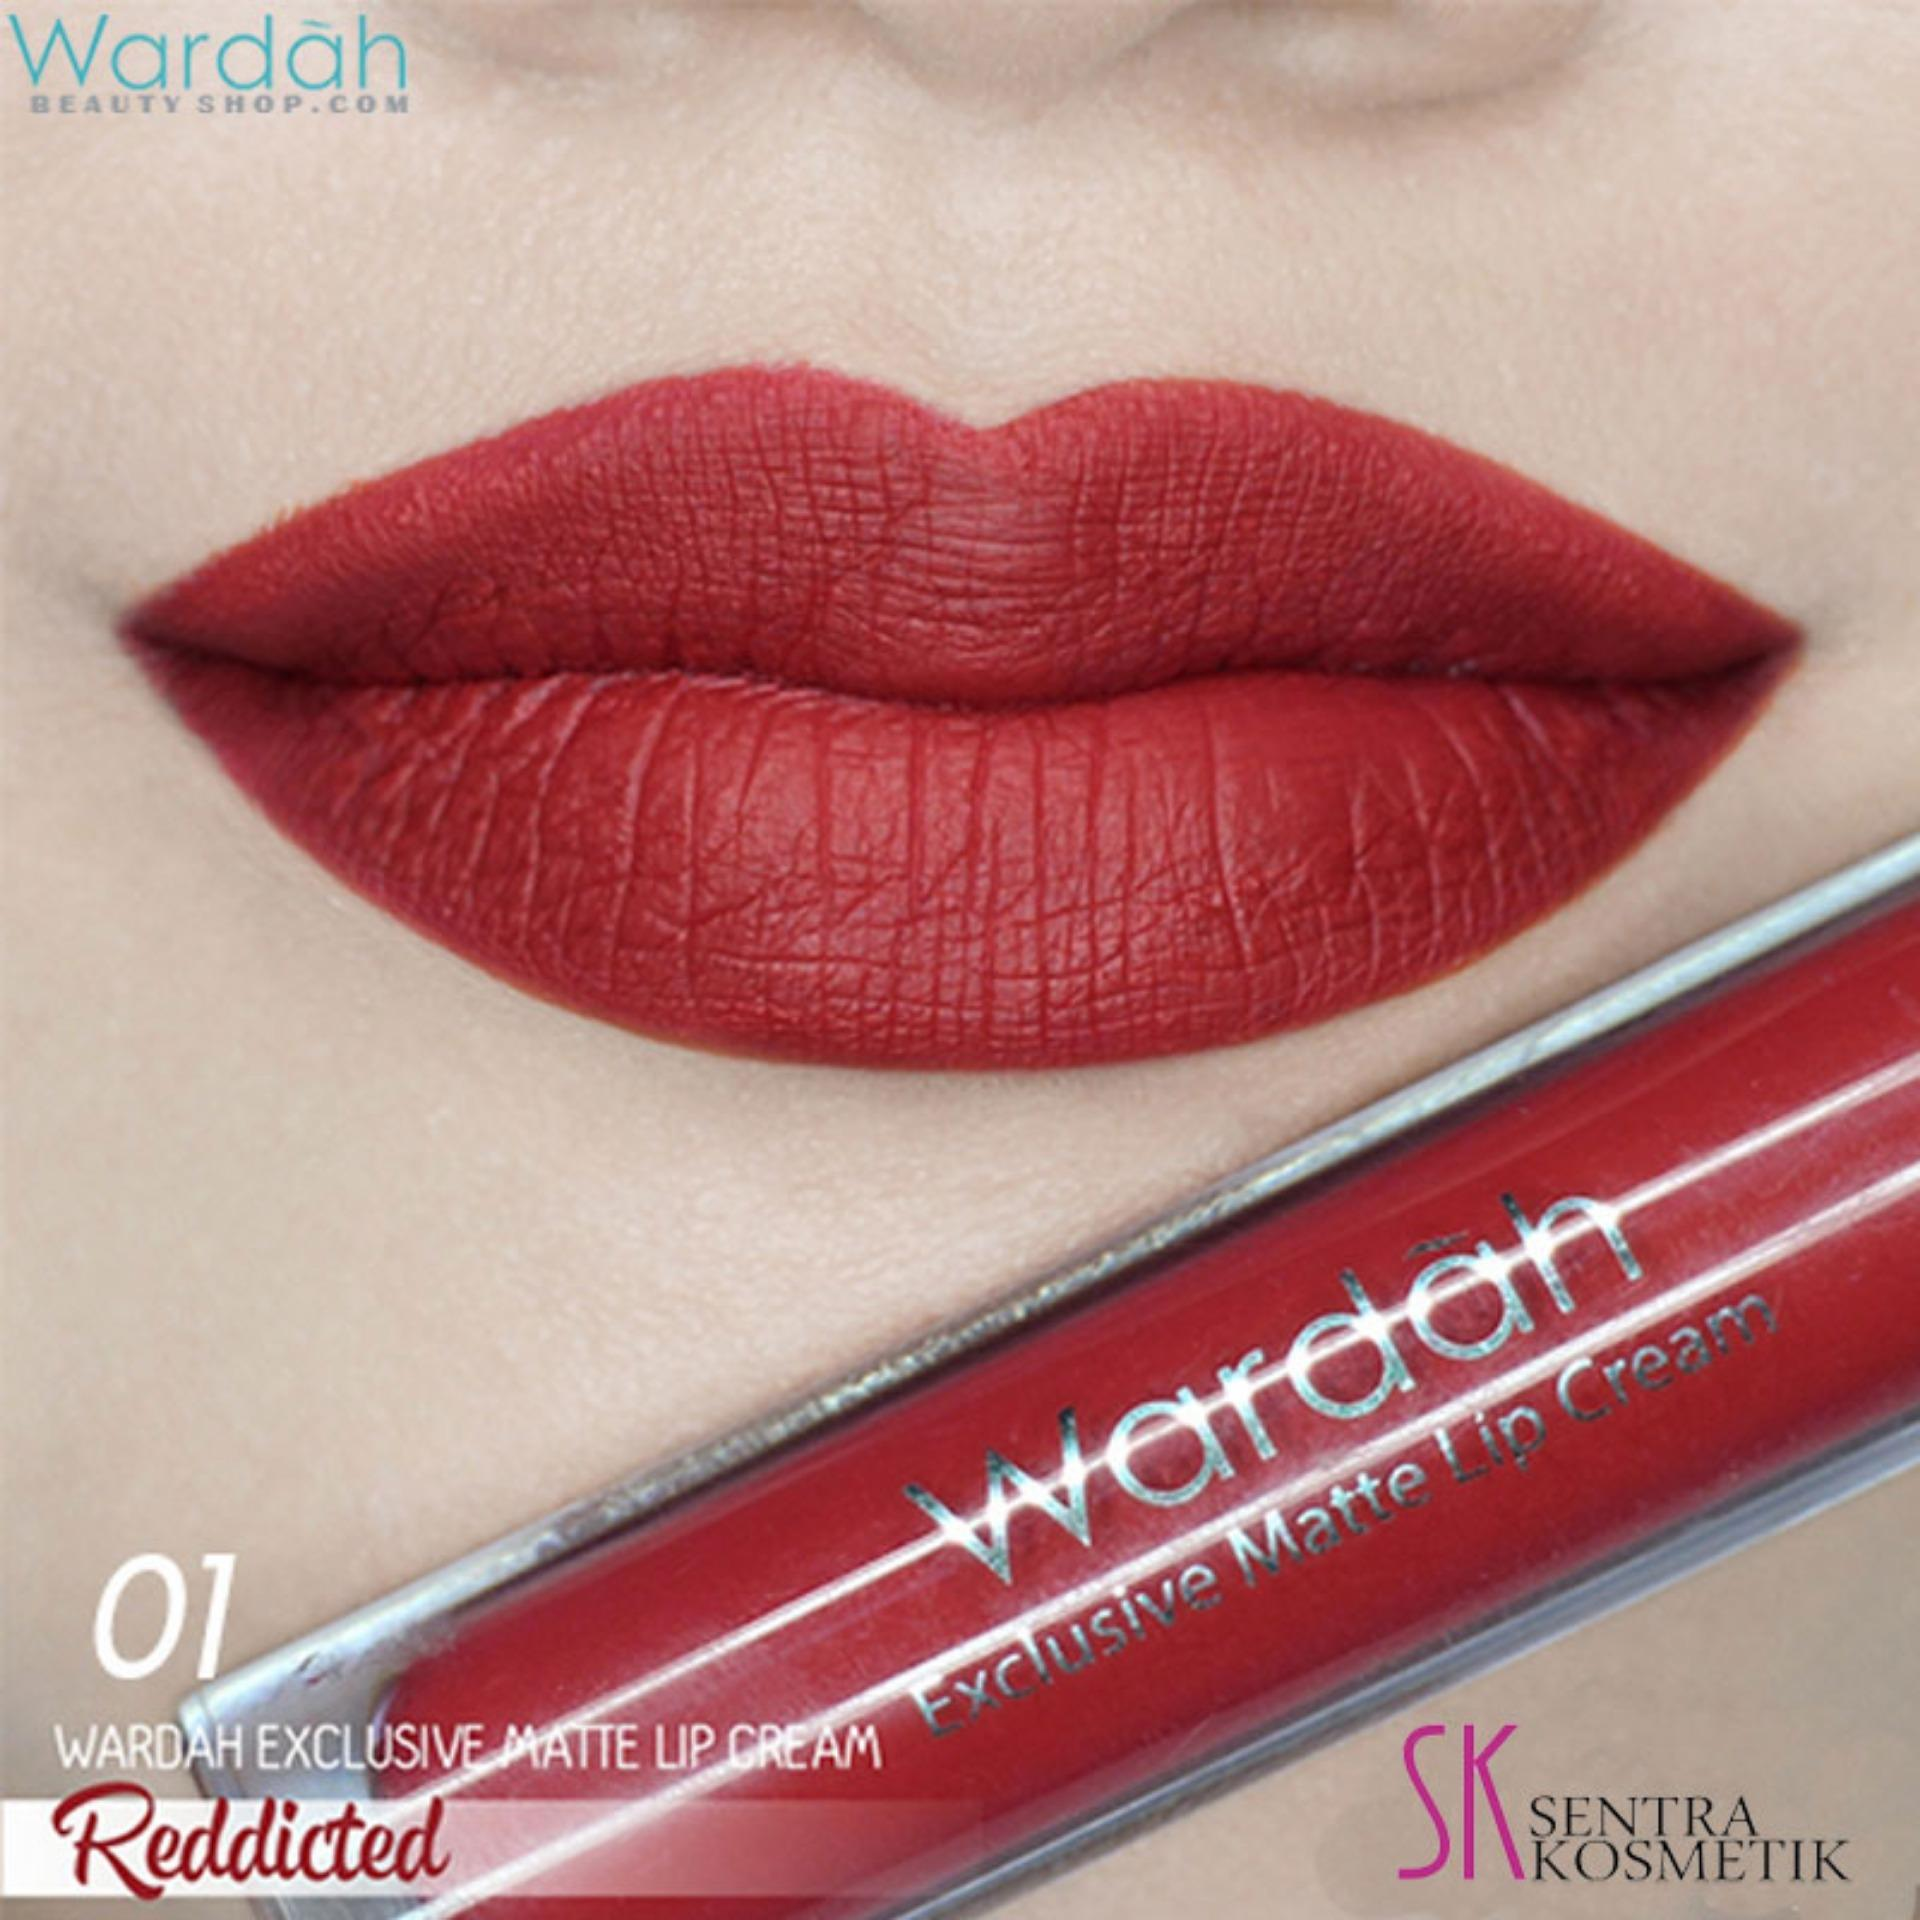 Lipstik Lip Cream Wardah Terbaik Exclusive Matte 4 G No 01 Red Dicted